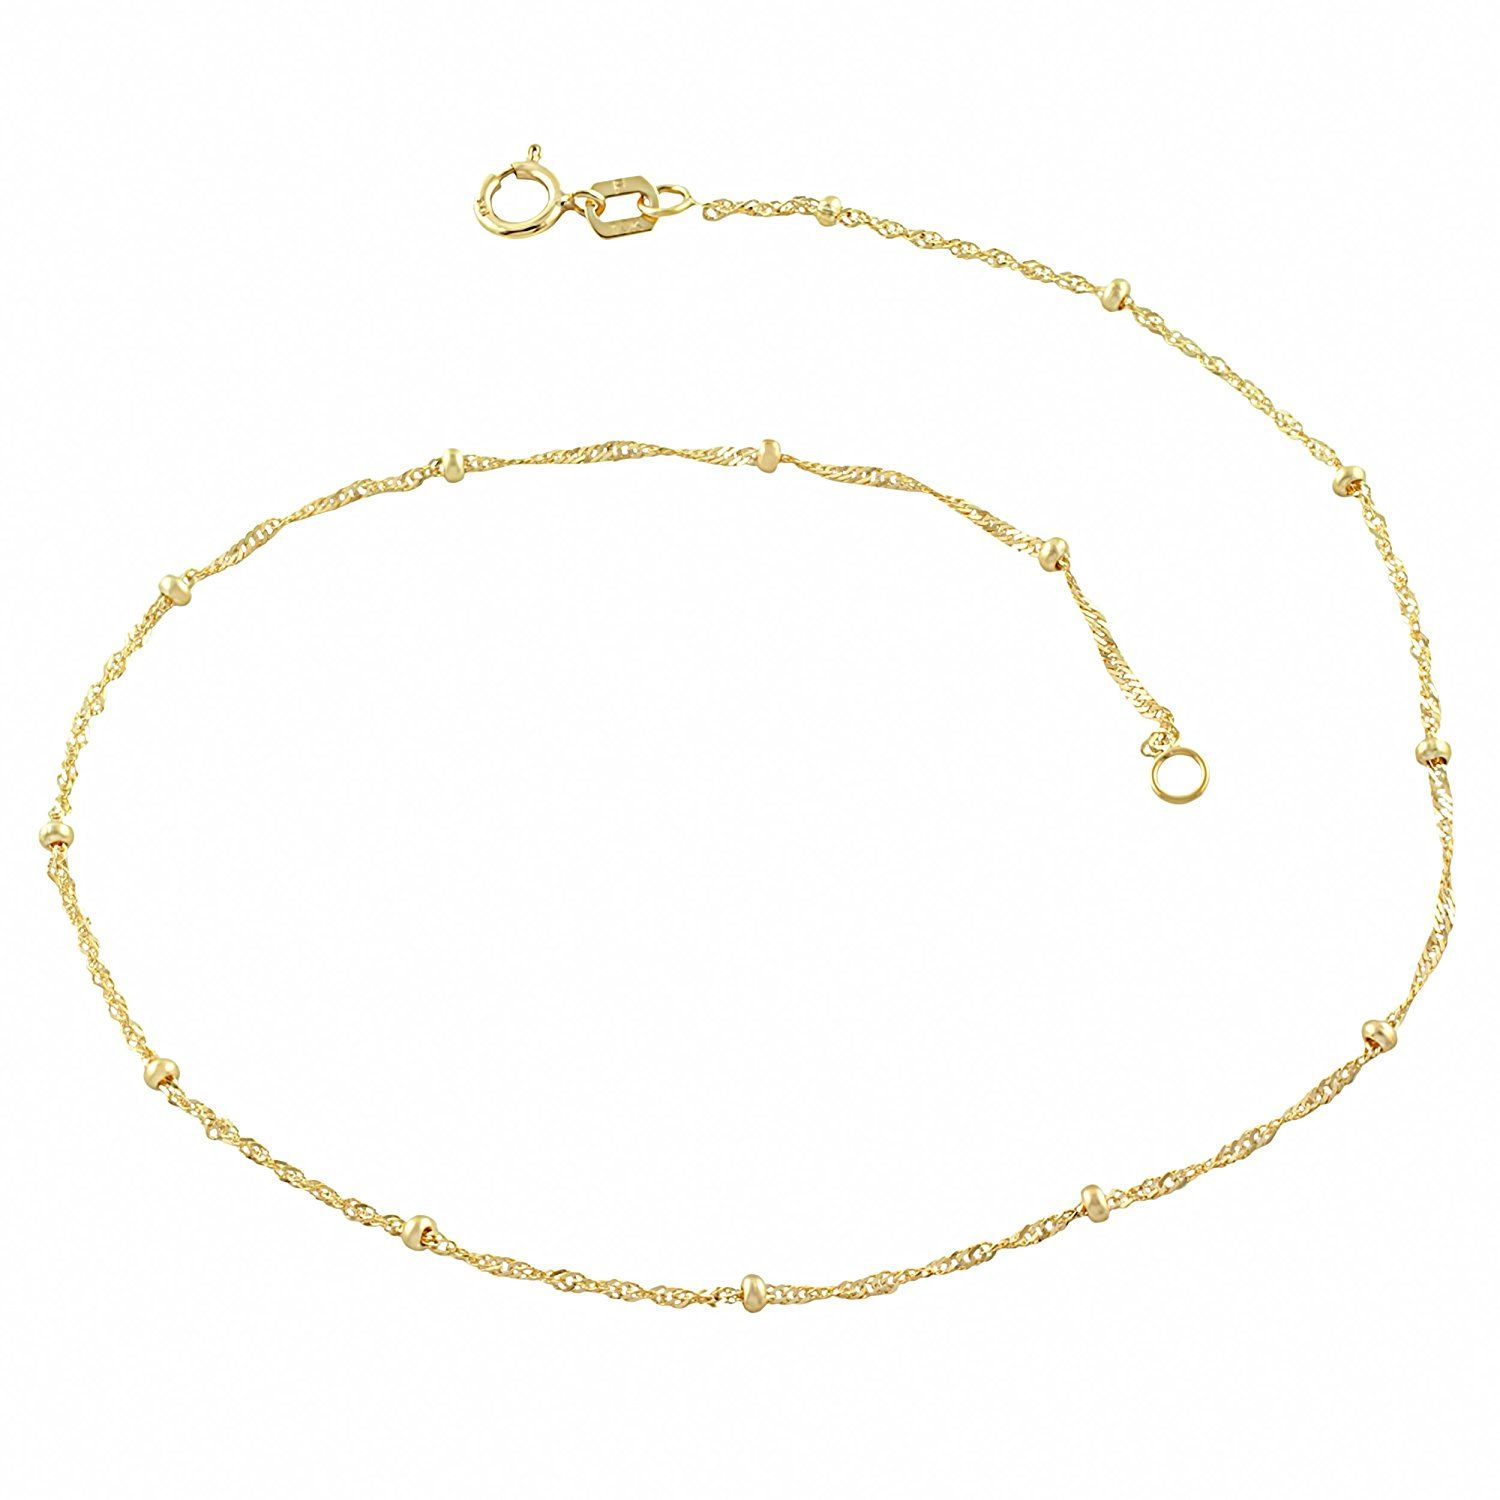 round anklets jewels ankle bracelet by category karat white gold archives elle wheat product anklet chain